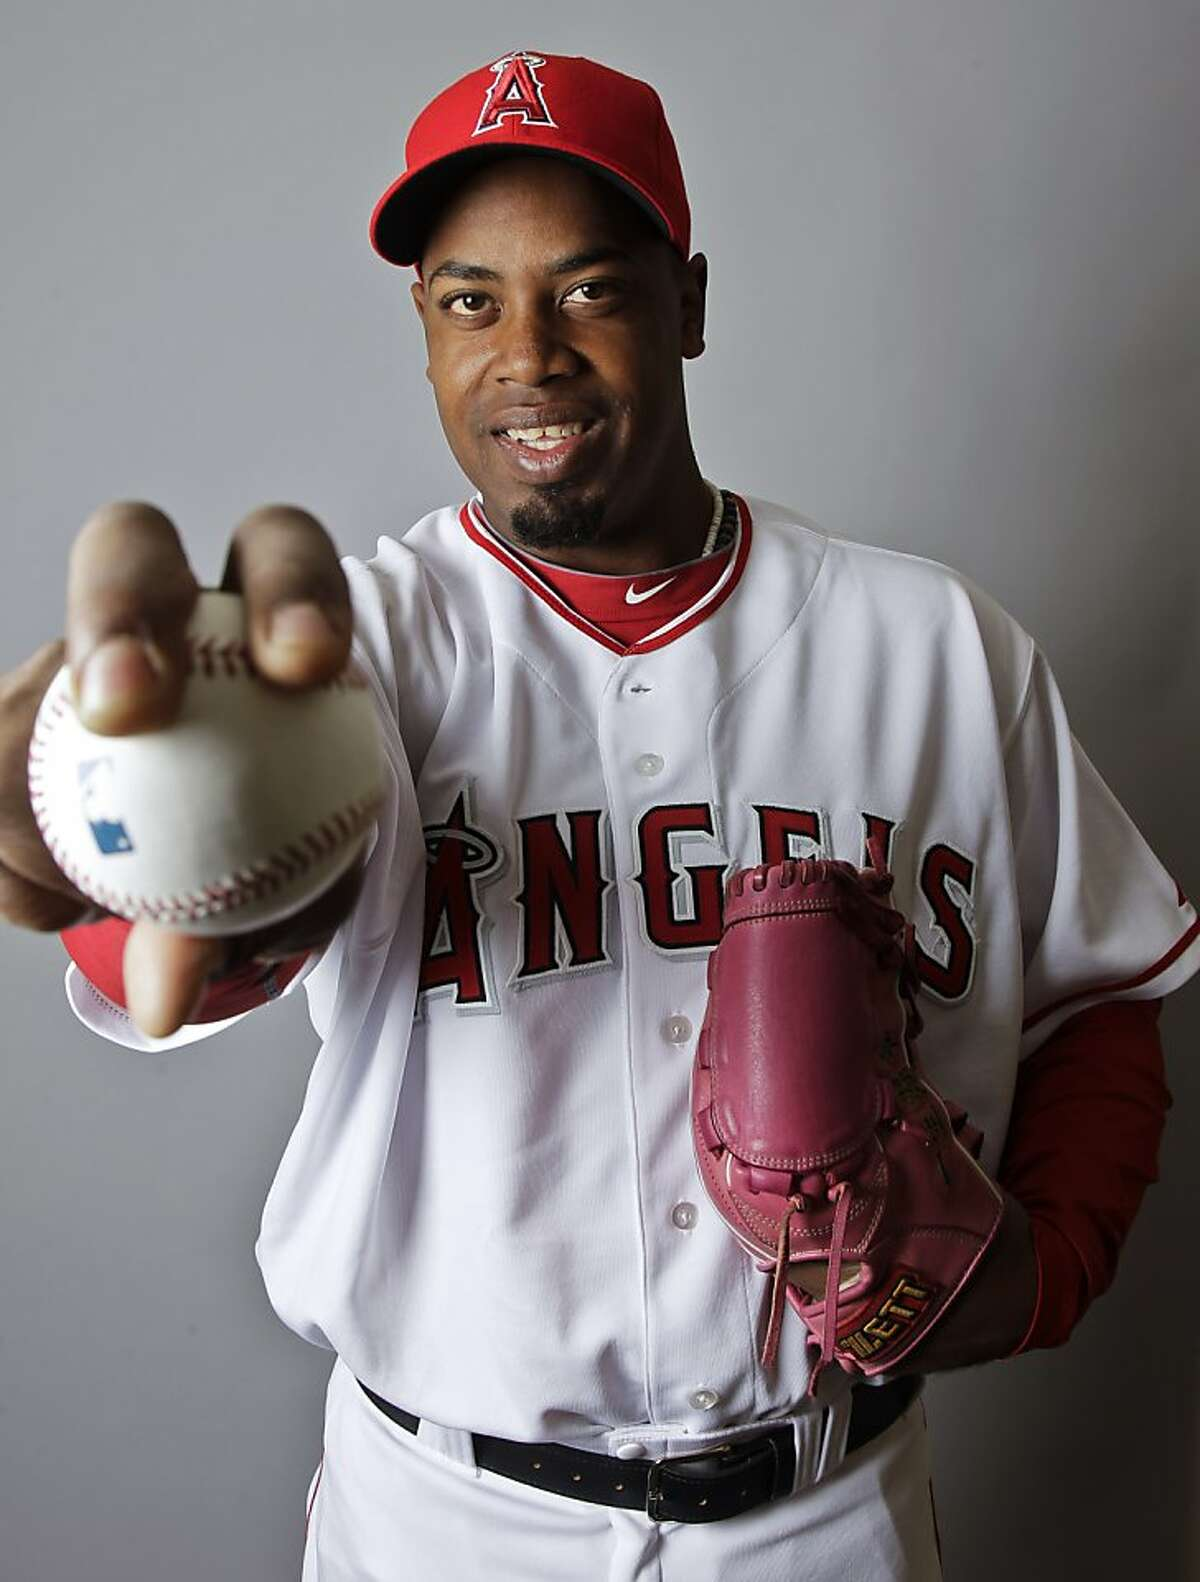 Los Angeles Angels' Jerome Williams holds a baseball during the team's photo day before a spring training baseball workout Wednesday, Feb. 29, 2012, in Tempe, Ariz. (AP Photo/Morry Gash)